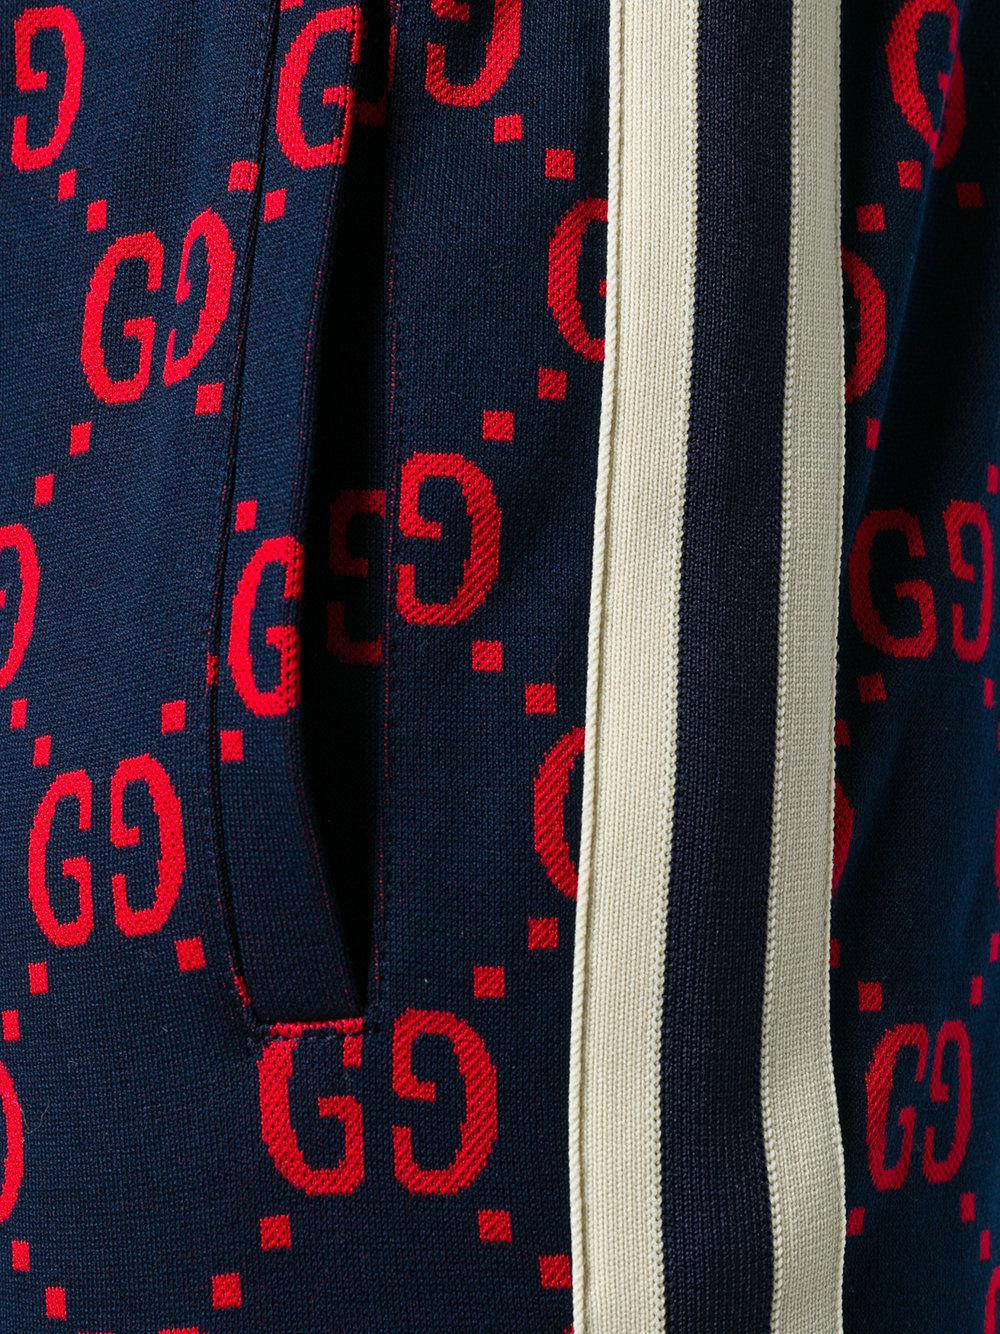 c430c7180 Gucci Gg Jacquard Jogging Trousers in Blue for Men - Lyst